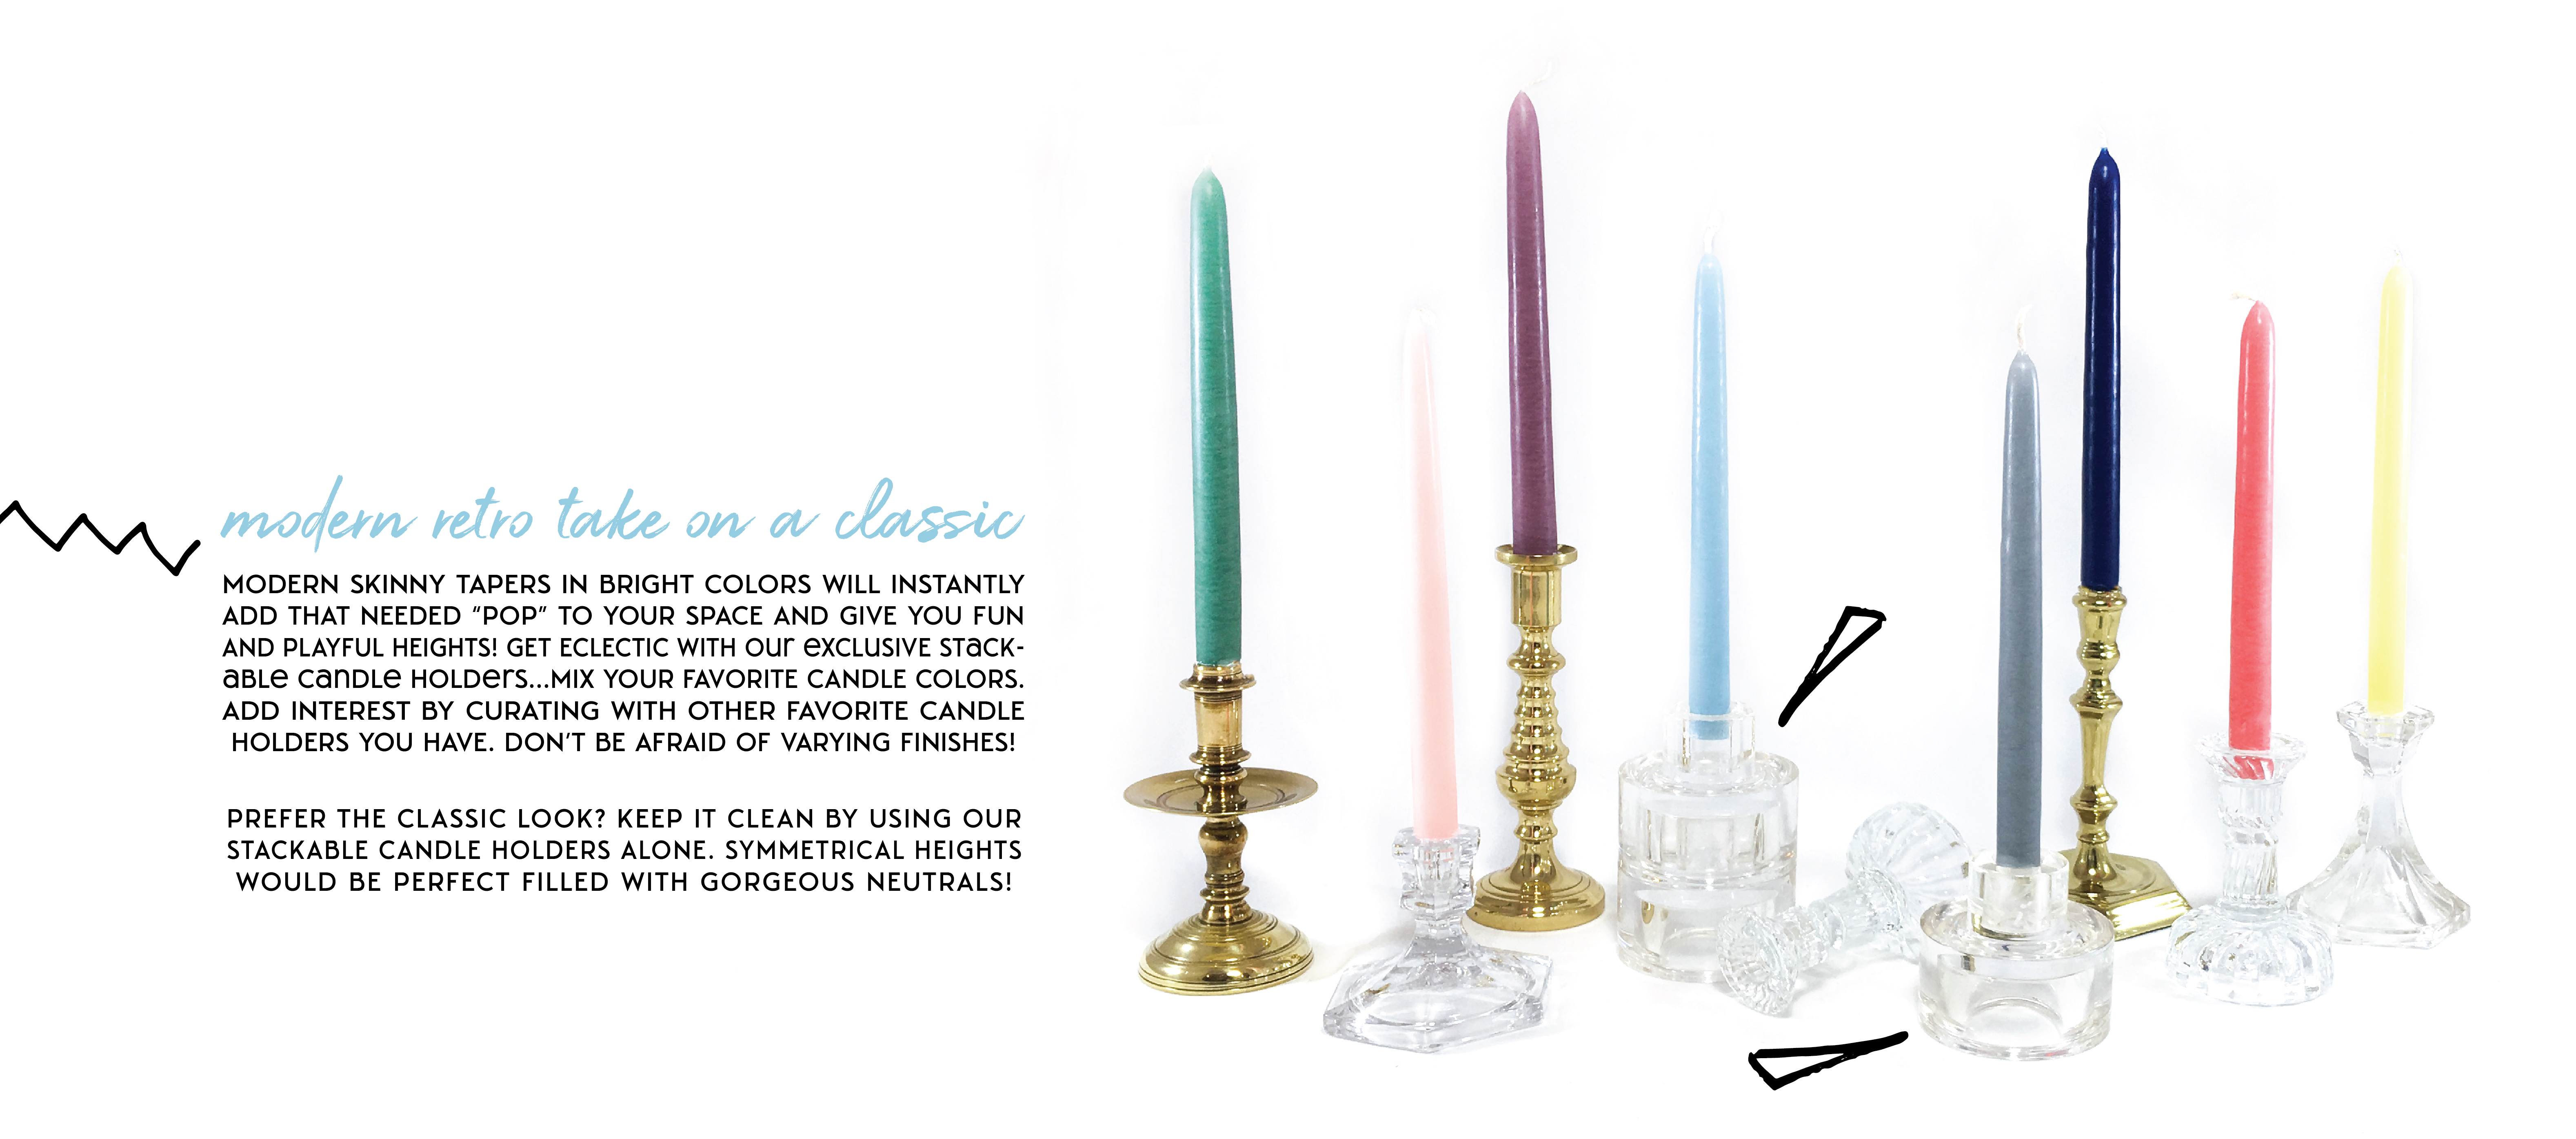 made-market-co.-internal-page-06.21.19-02-candles-holders.jpg